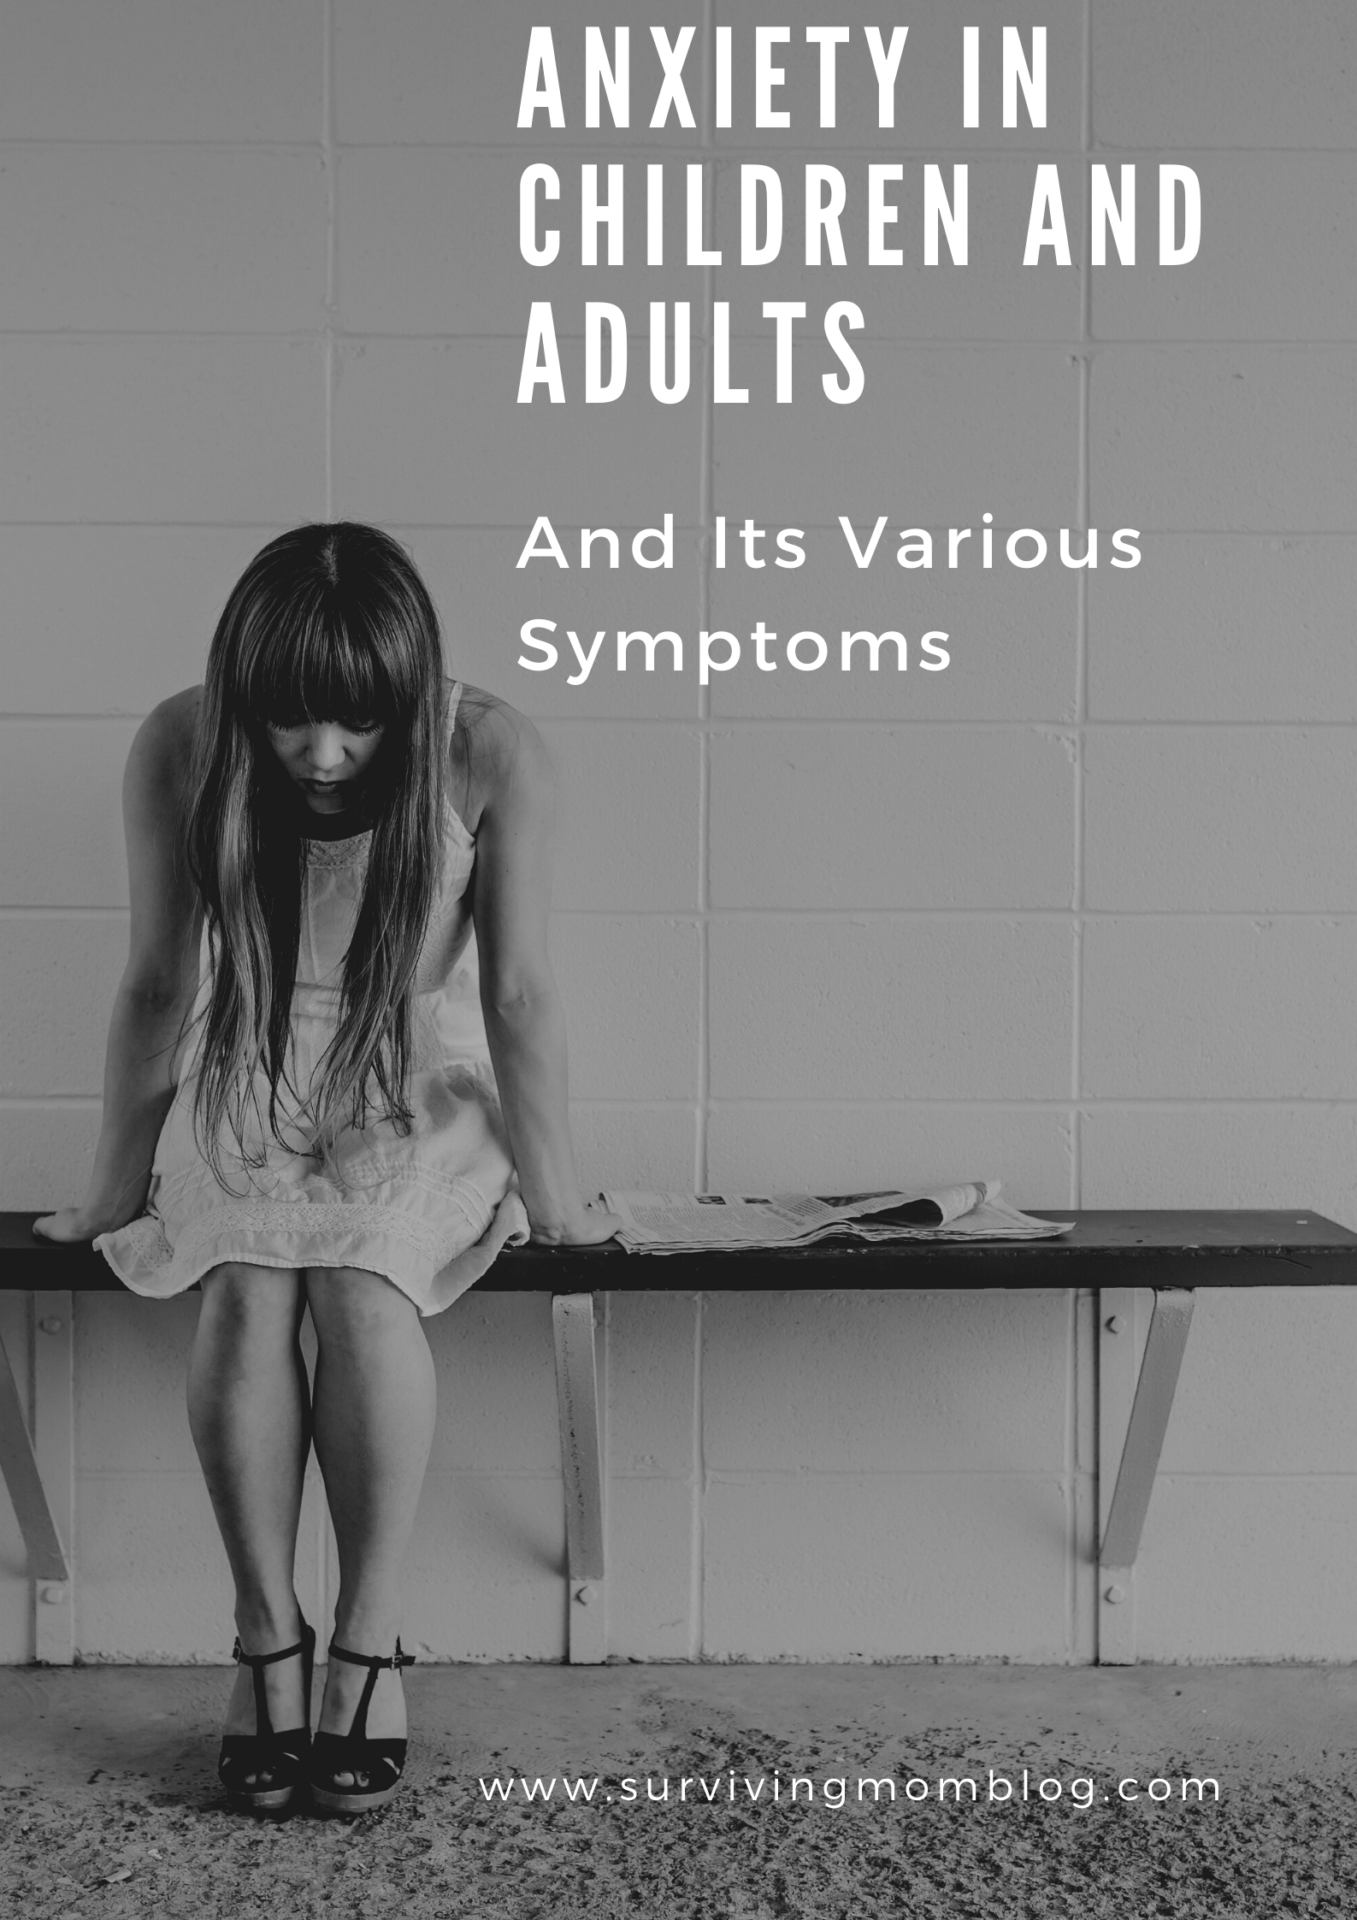 Understanding Anxiety in Children and Adults and Its Various Symptoms